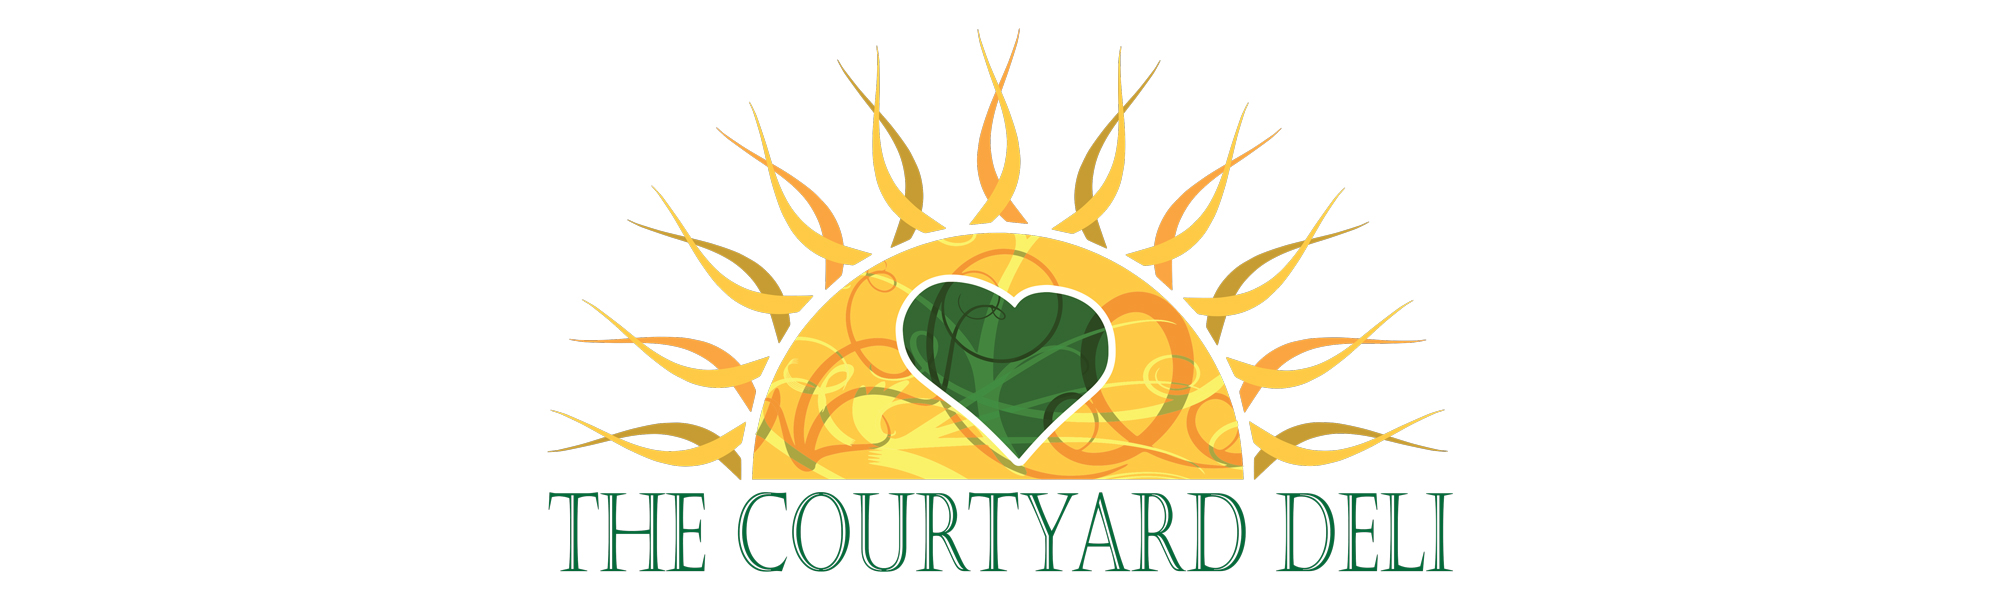 The Courtyard Deli